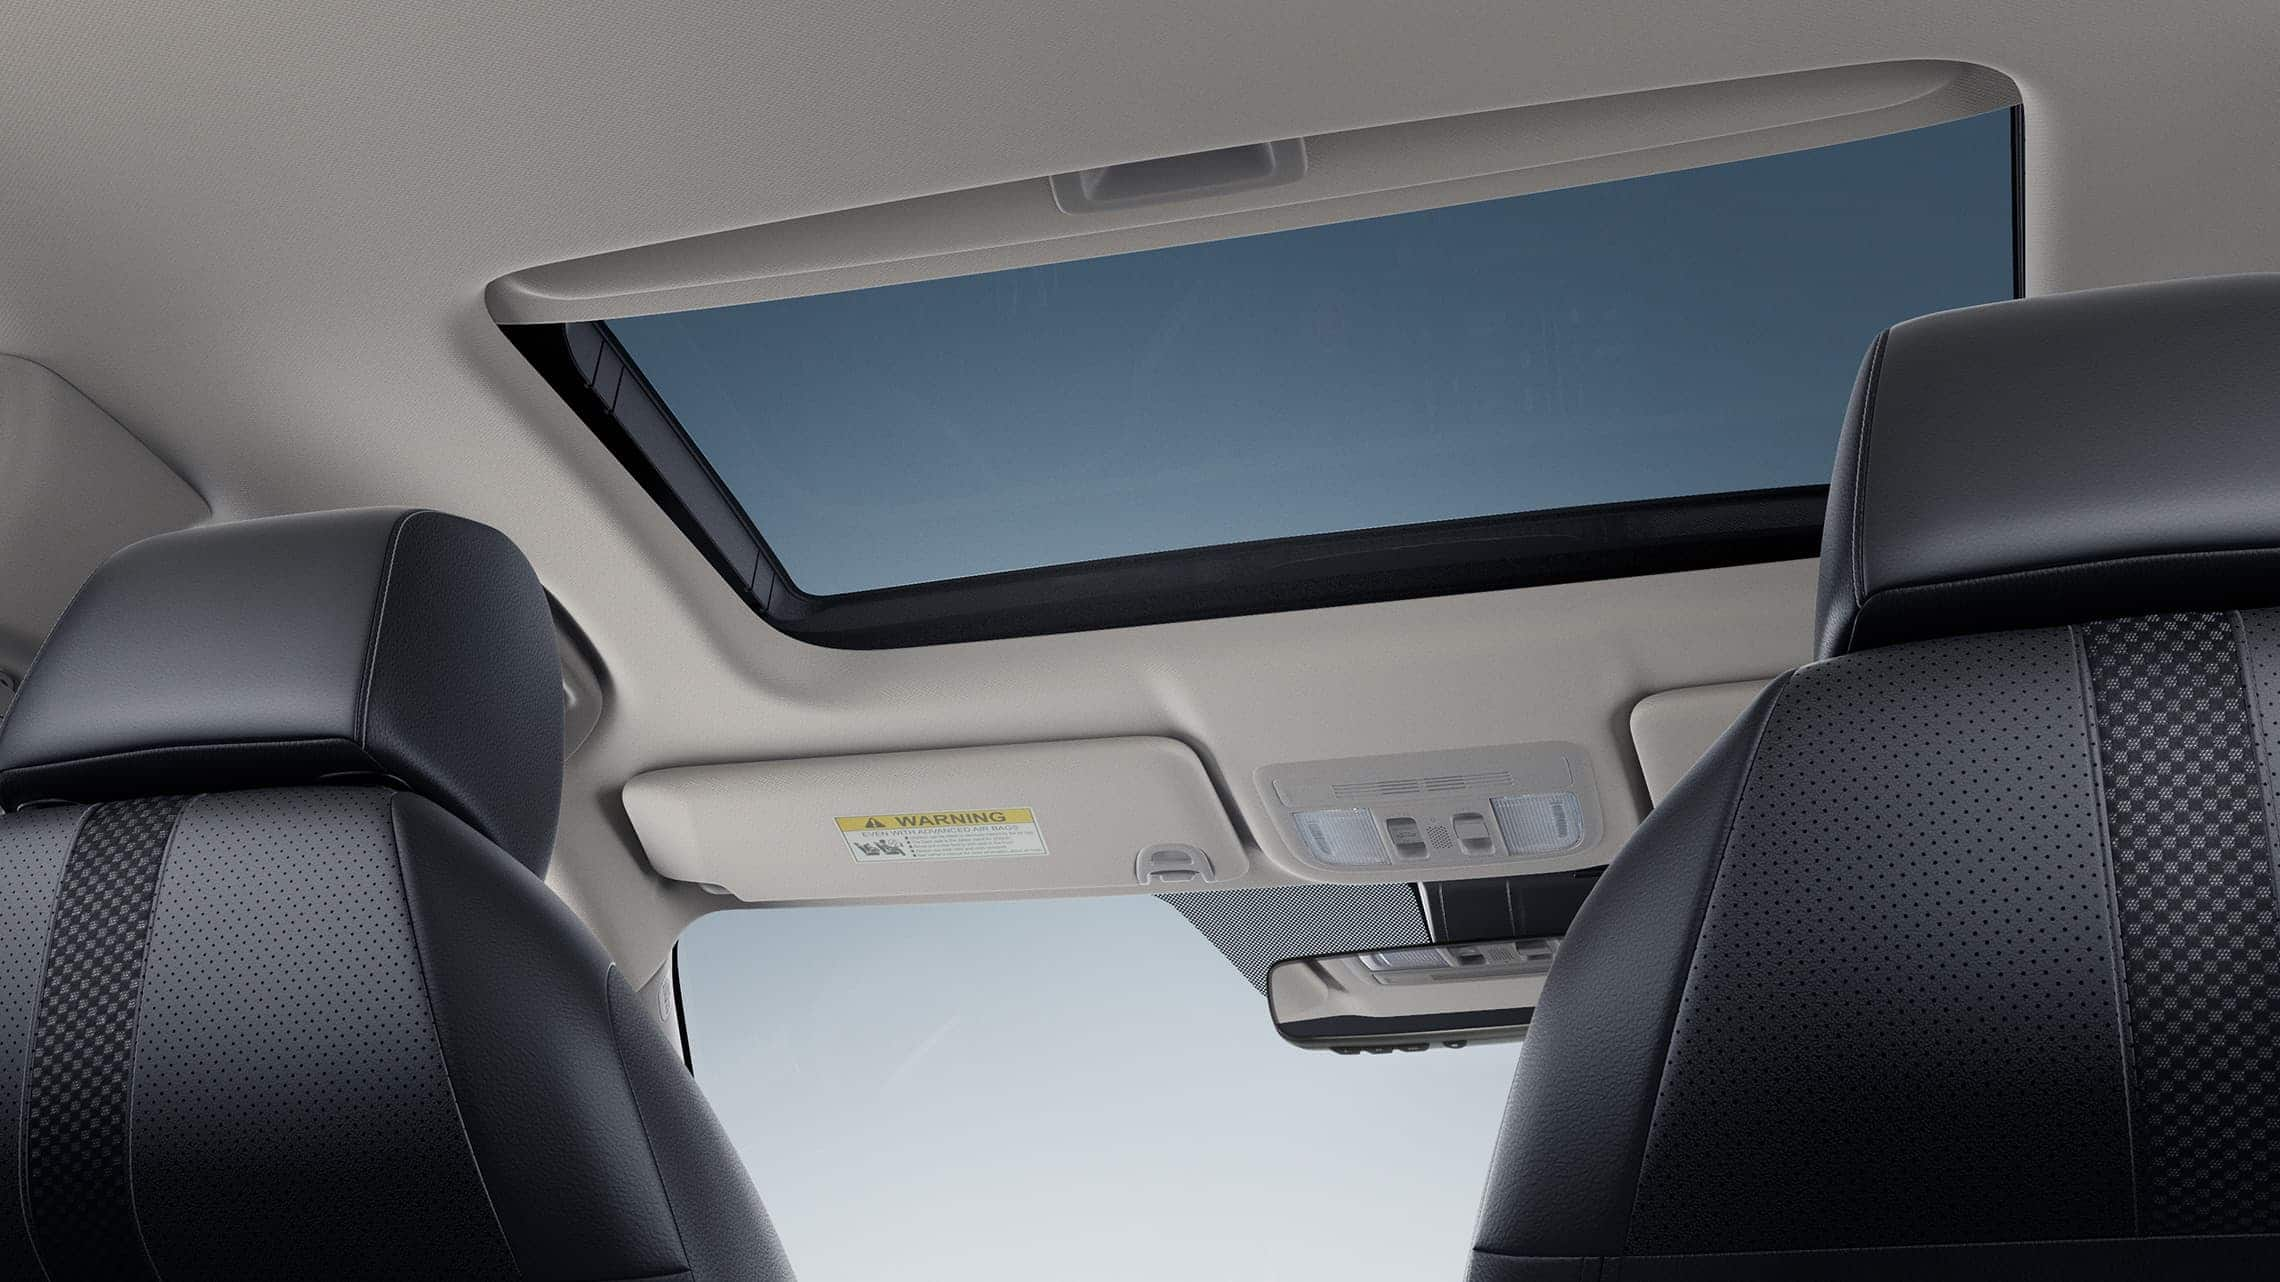 One-touch power moonroof detail in the 2020 Honda Civic Touring Sedan.